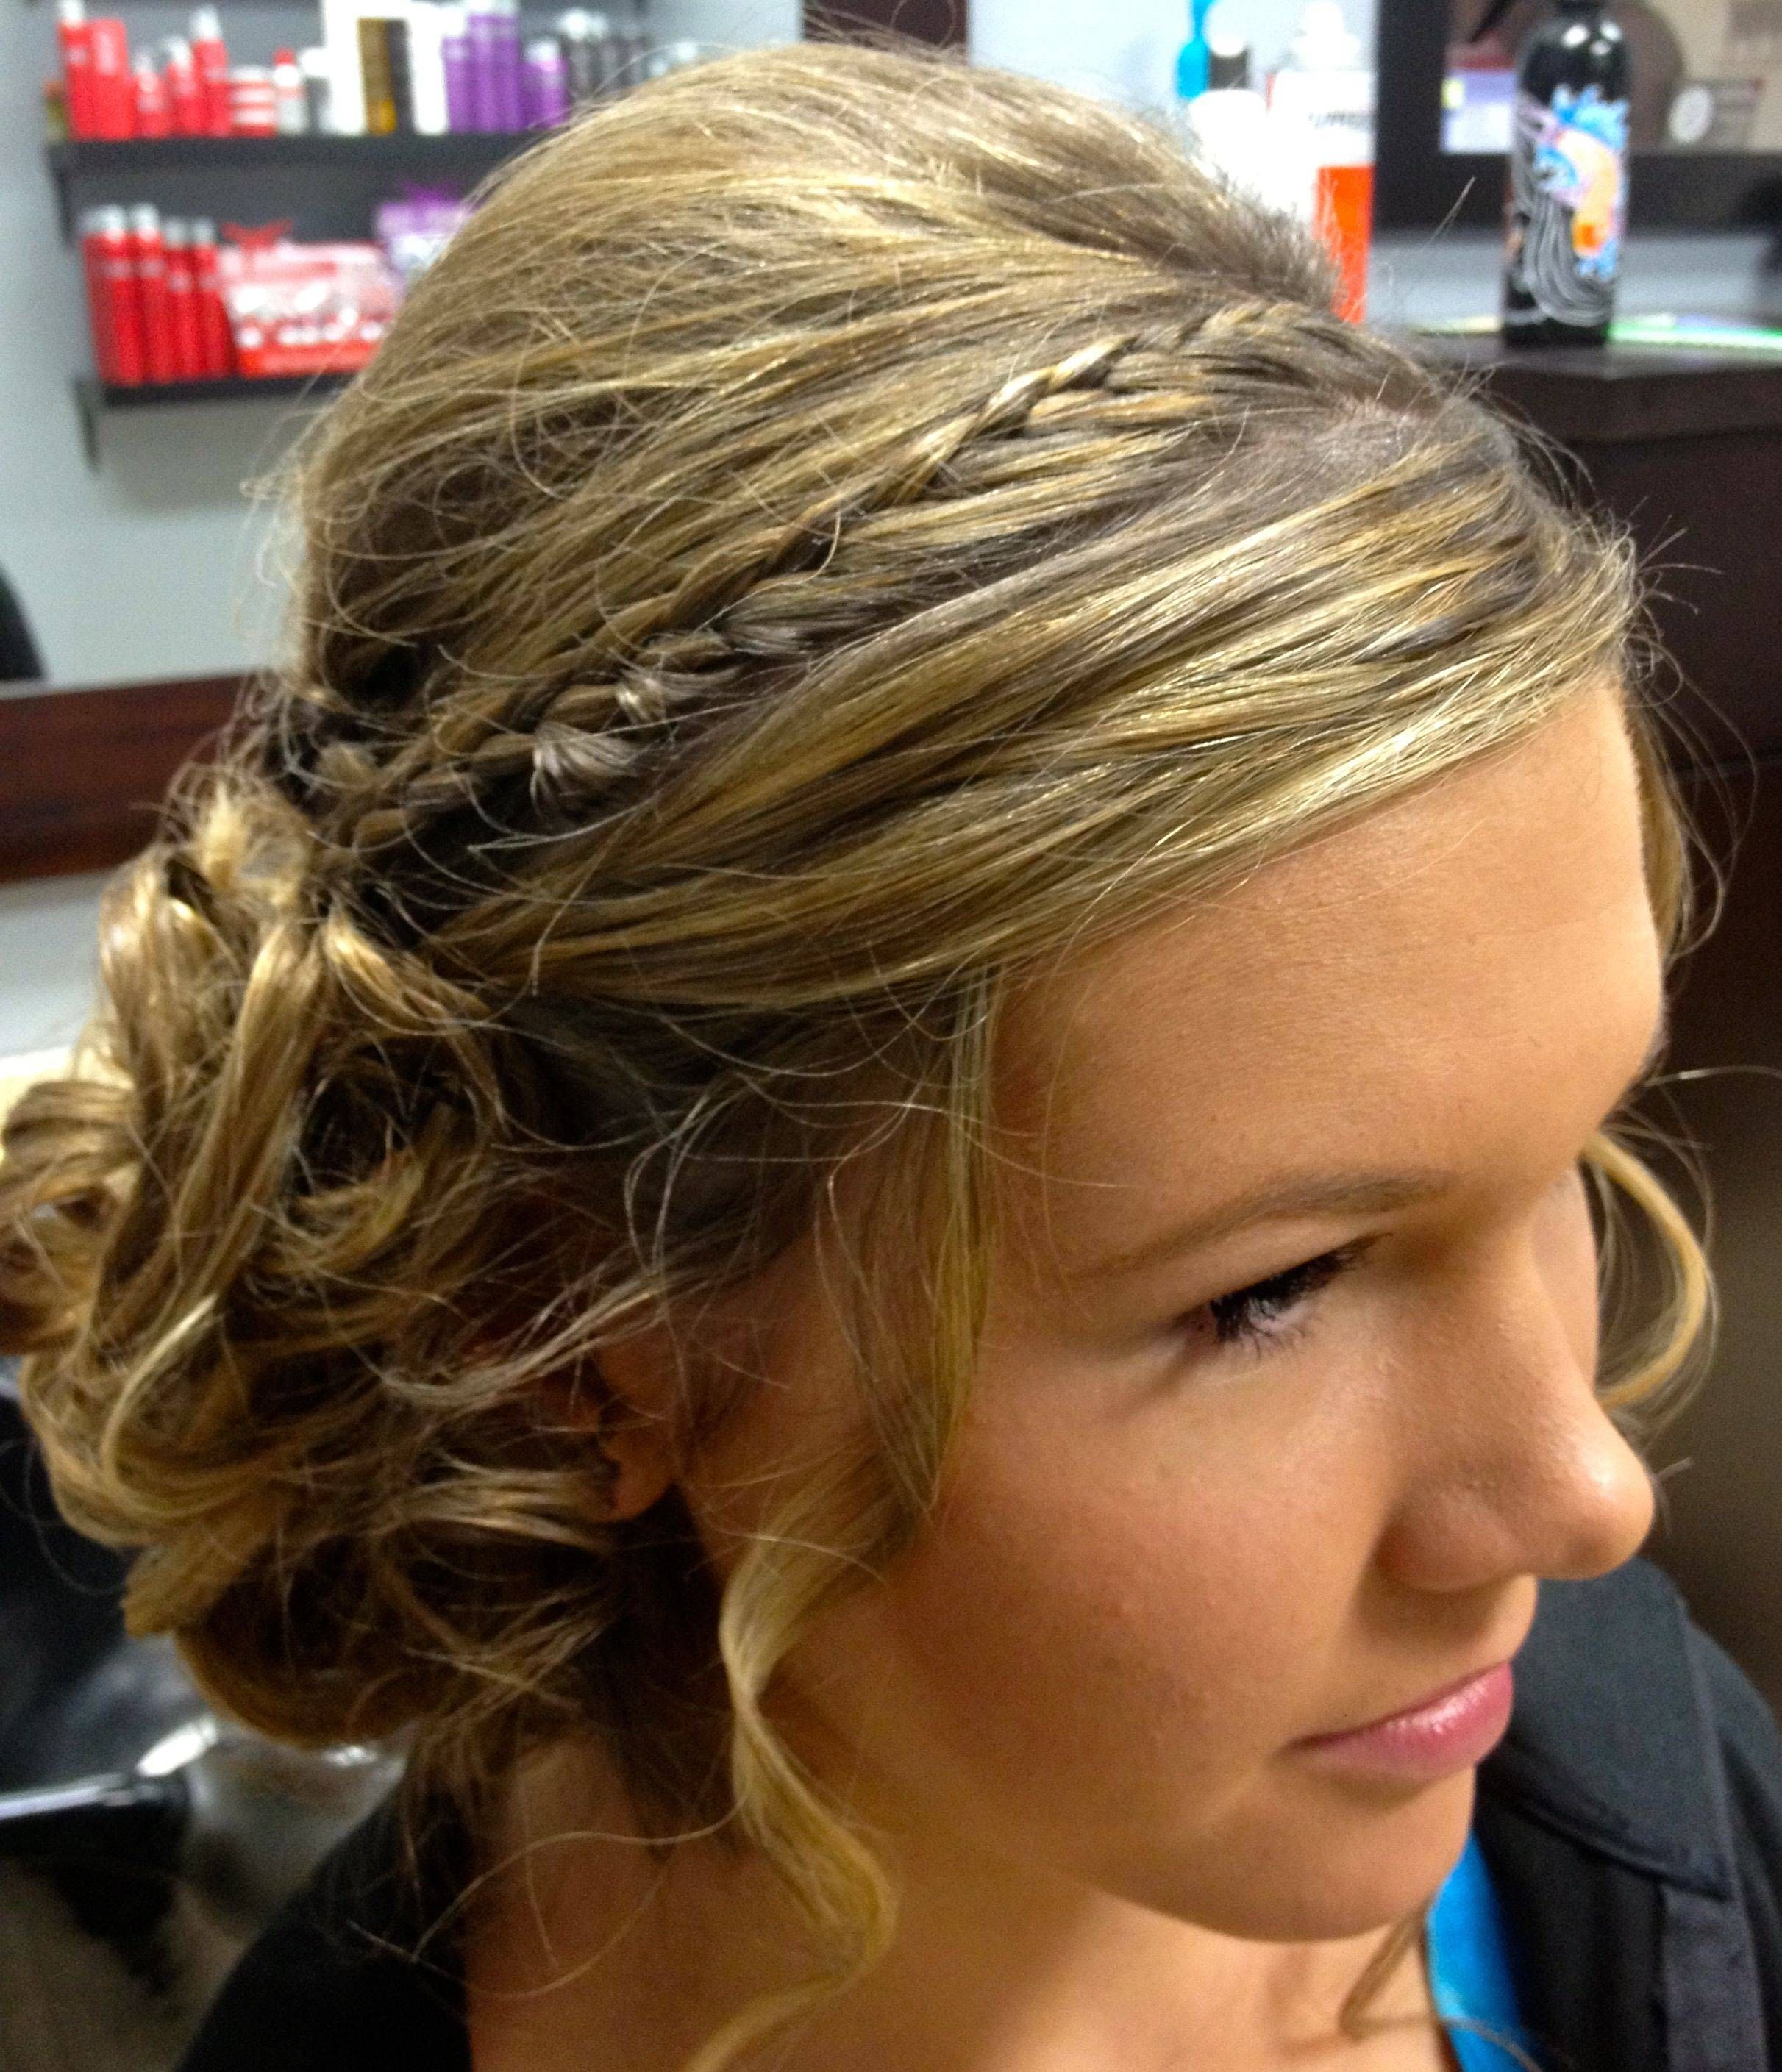 Terrific 1000 Images About Homecoming Hair On Pinterest Spiral Curls Short Hairstyles For Black Women Fulllsitofus